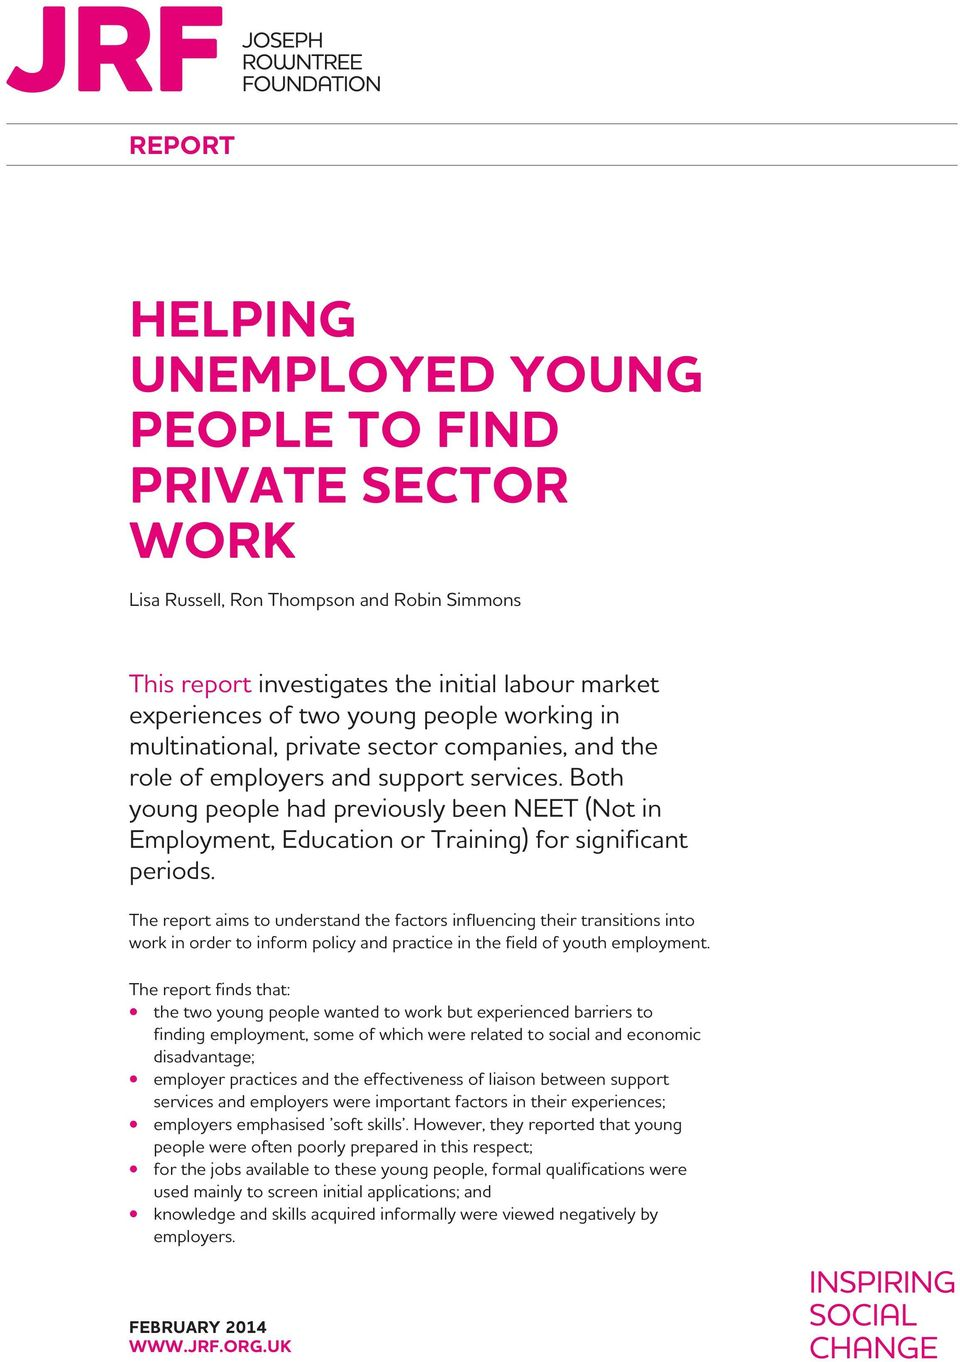 Both young people had previously been NEET (Not in Employment, Education or Training) for significant periods.